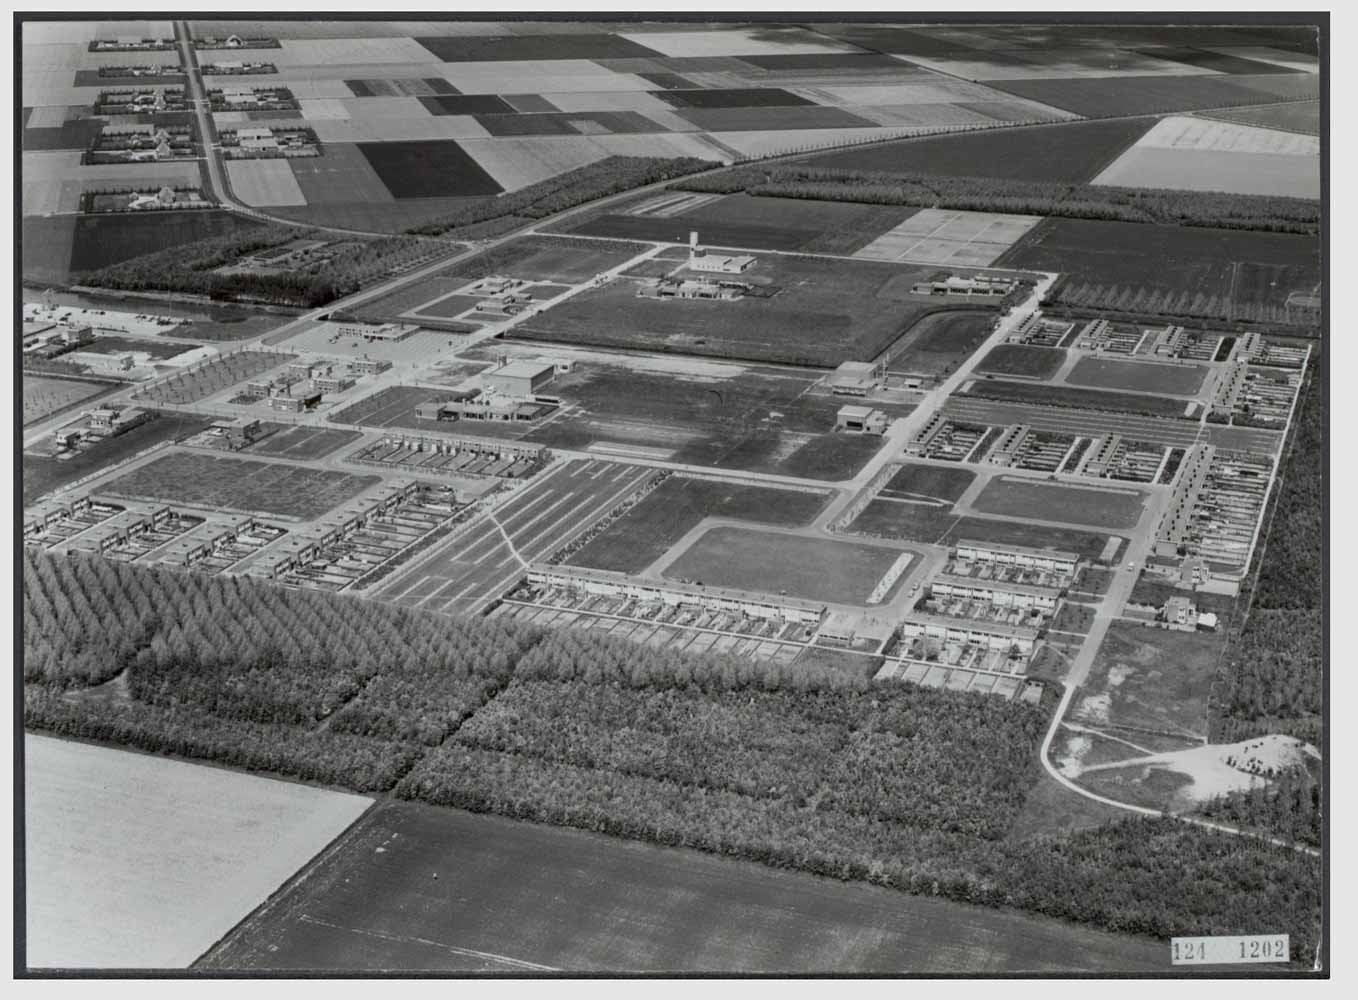 historic aerial photograph of Nagele under construction image courtesy of the National Archives